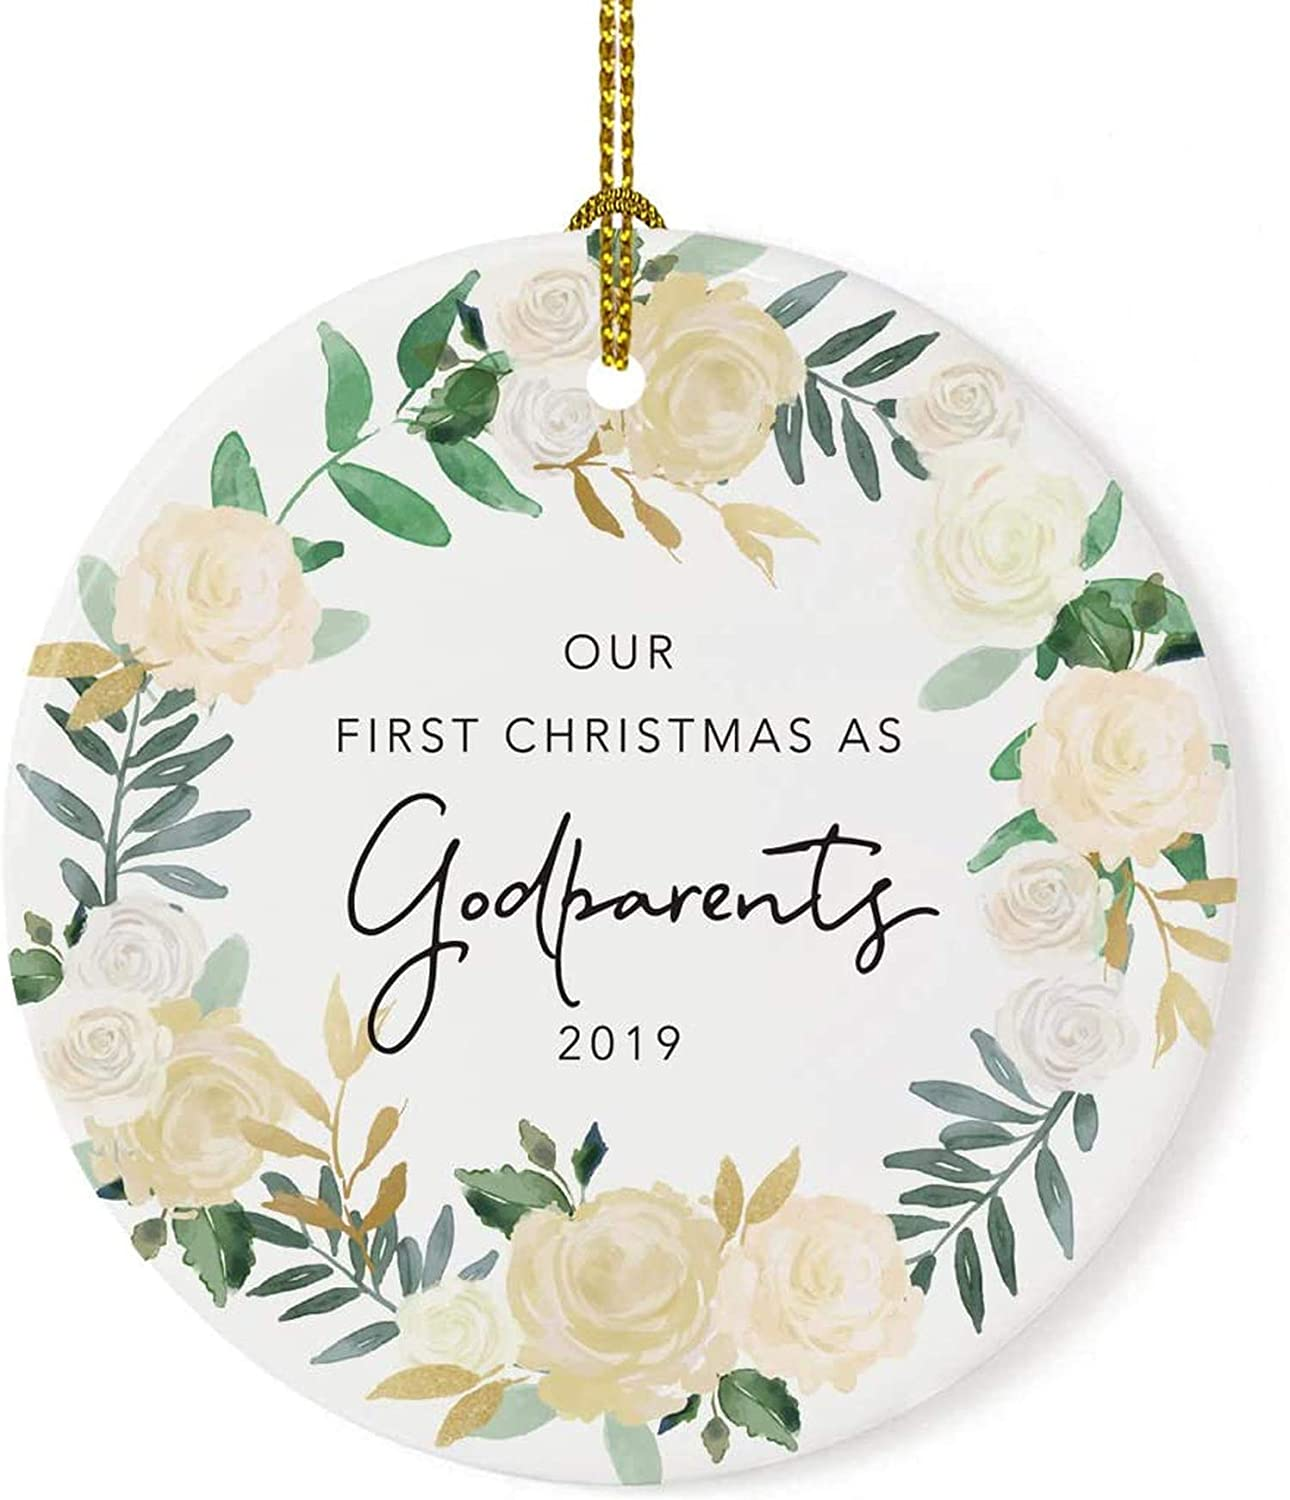 Big Incisors Sandals Custom Year Round Ceramic Porcelain Christmas Tree Ornament Keepsake Collectible Godparent Gift, Our 1st Christmas as Godparents 2020, Ivory Roses Floral Wreath, 1-Pack,7.27.2cm